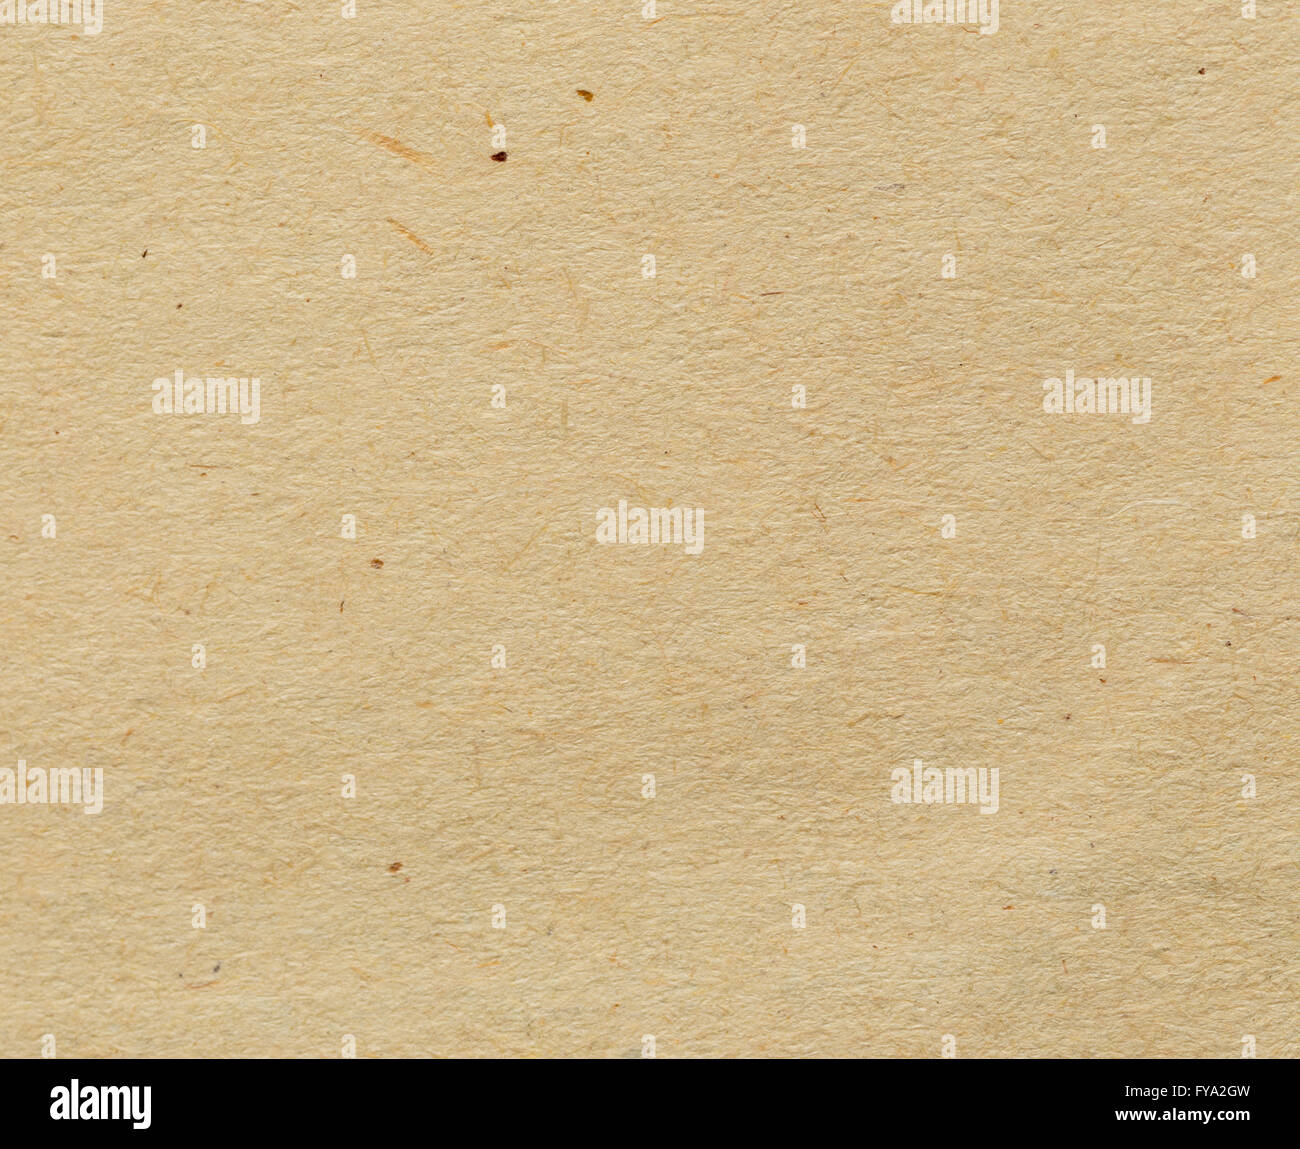 Natural paper texture background with particles for design-use - Stock Image